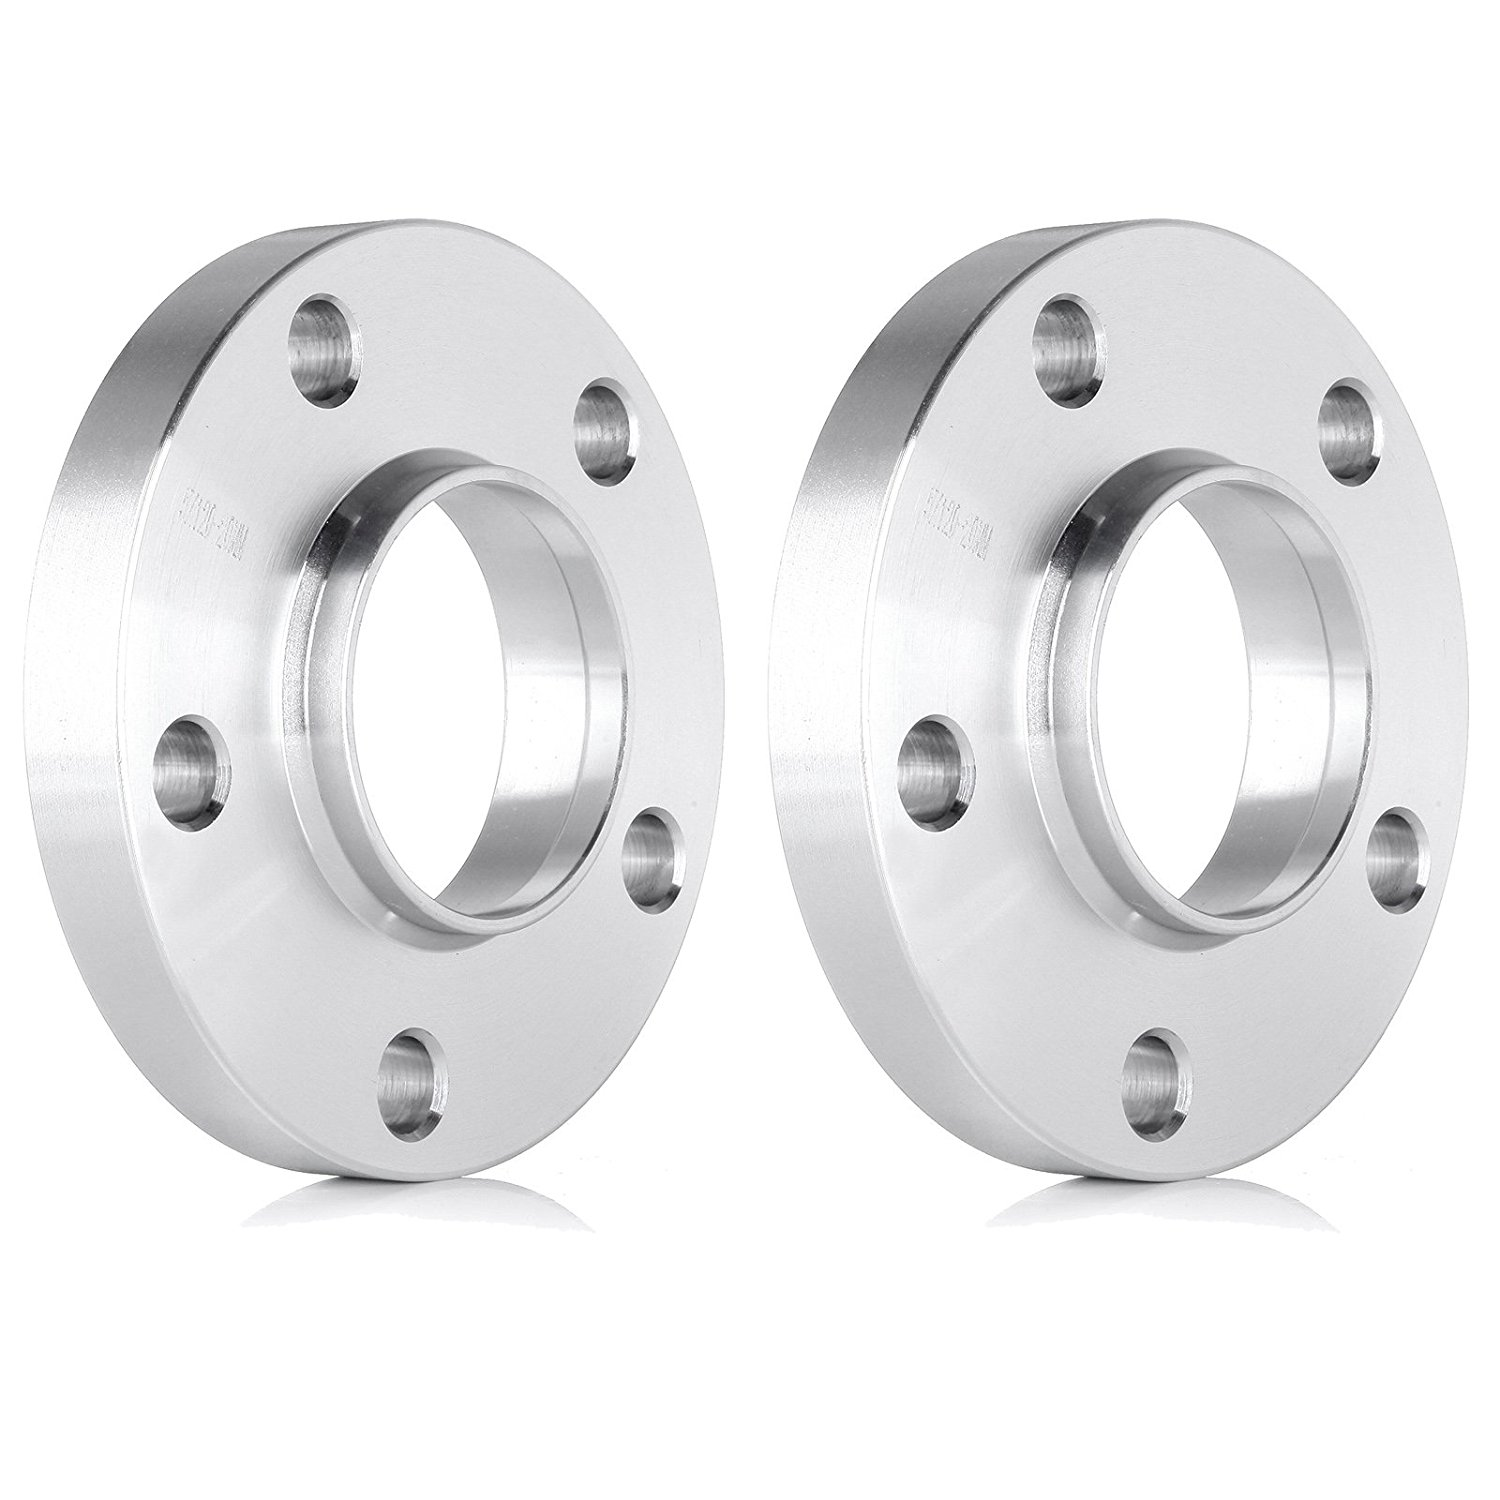 ECCPP 2PCS 20mm thick 5x120mm(72.56) Hub Centric Wheel Spacers Staggered Kit for BMW 1 2 3 4 5 6 7 8 SERIES 1998 1999 2000 2001 2002 Z3 M-COUPE/ROADSTER With Lug Bolts(12x1.5)